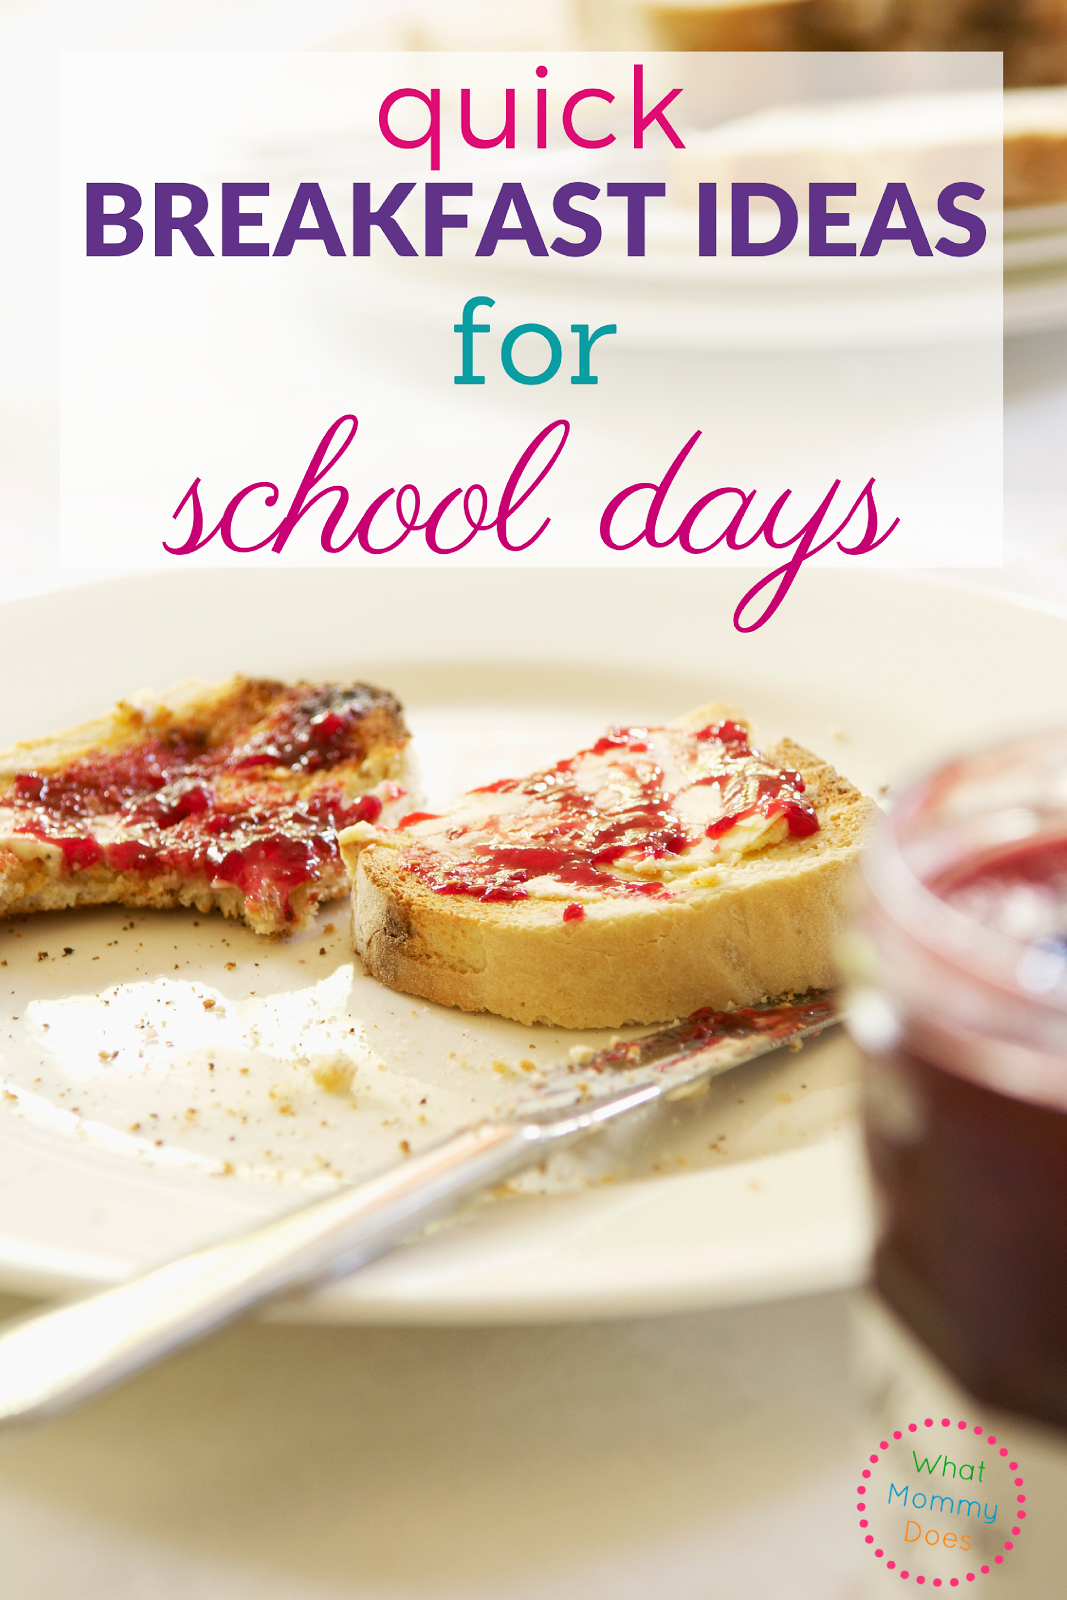 A list of quick school day breakfast ideas that can be made in just a few minutes OR even prepared ahead of time the evening before! Having a go-to list of easy breakfast ideas for your kids is a sanity saver on school mornings. #morning routine #backtoschool #parenting